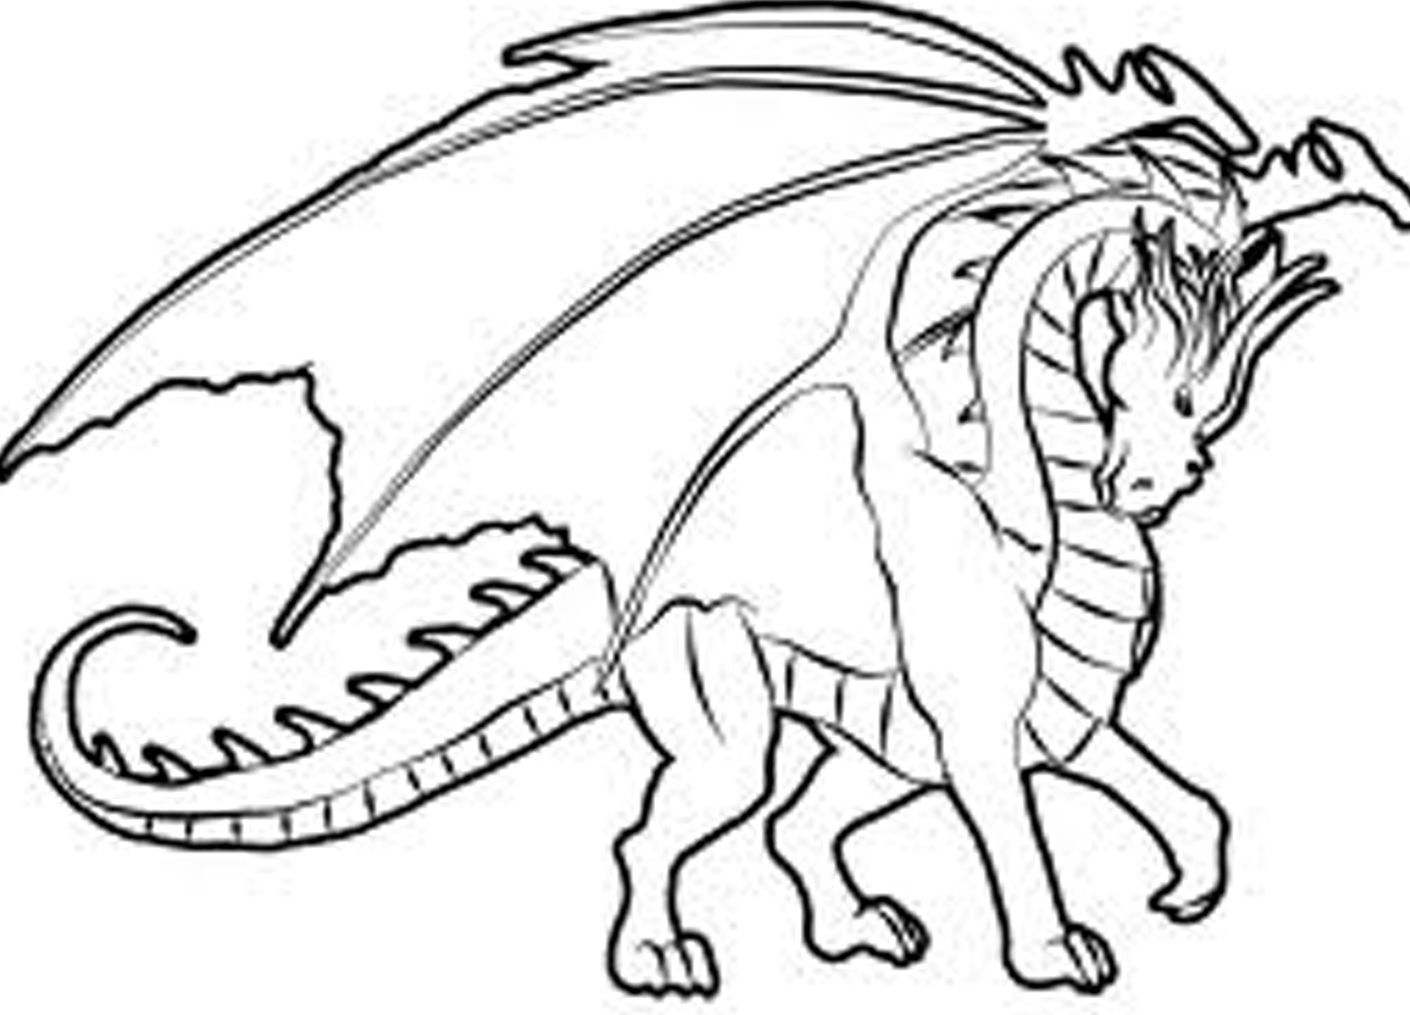 Childrens animal colouring pages - Hard Coloring Pages Of Dragons